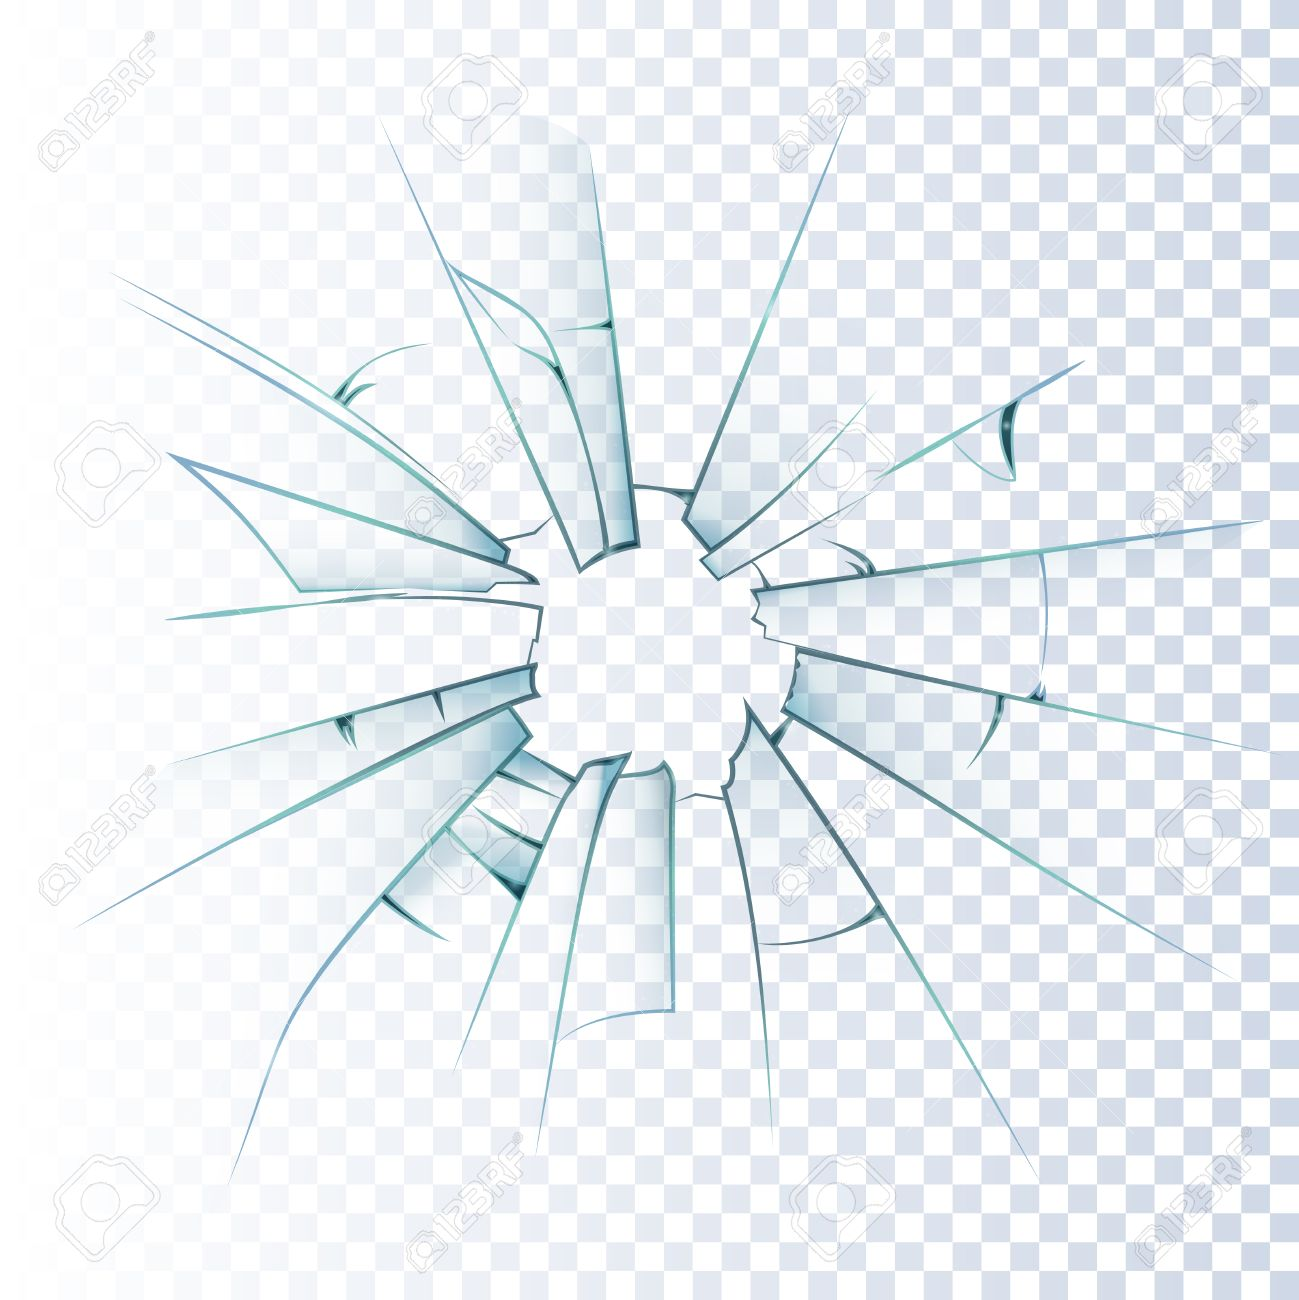 Broken frosted window pane or front door glass background decorative realistic daylight design vector illustration - 53875443